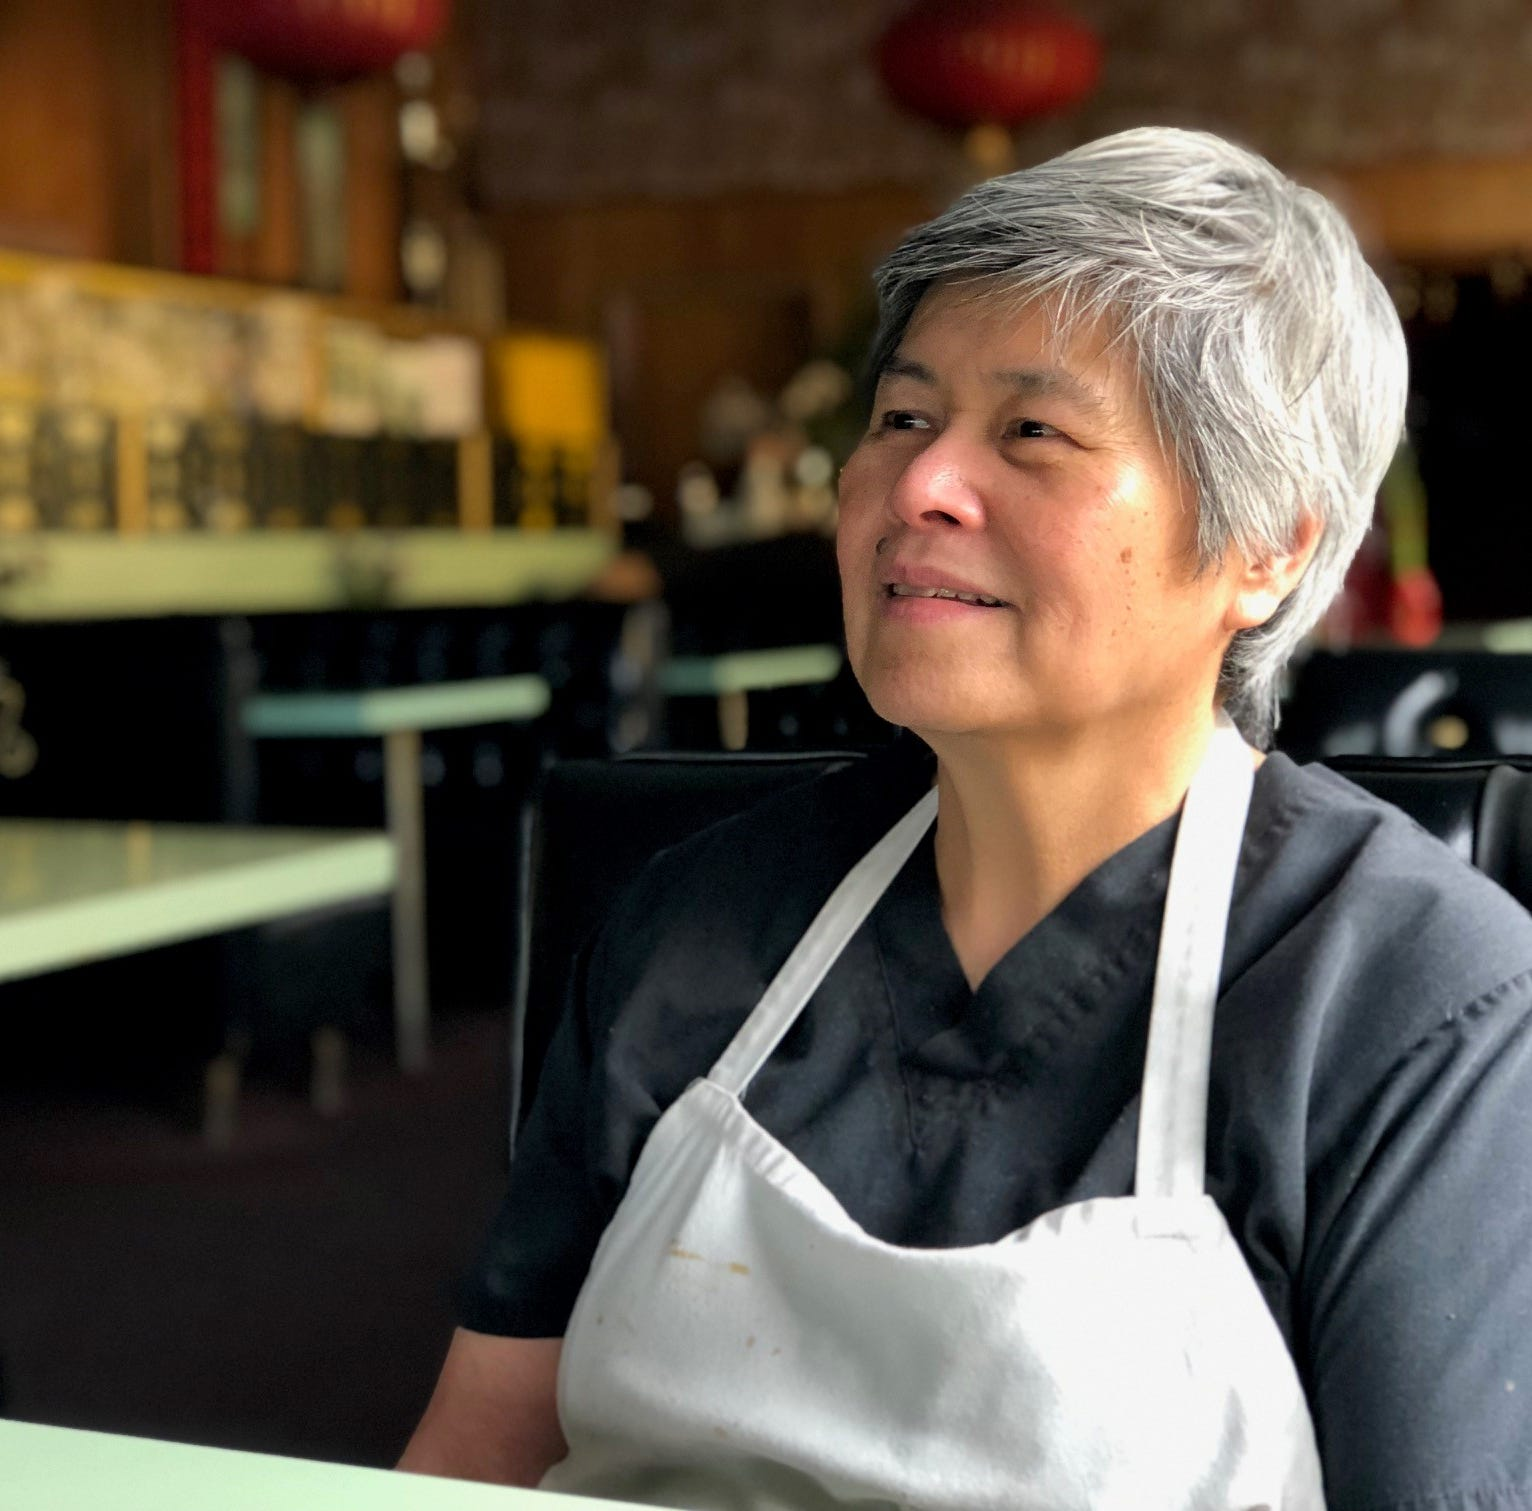 After serving generations of North State families, future of Lim's Cafe uncertain